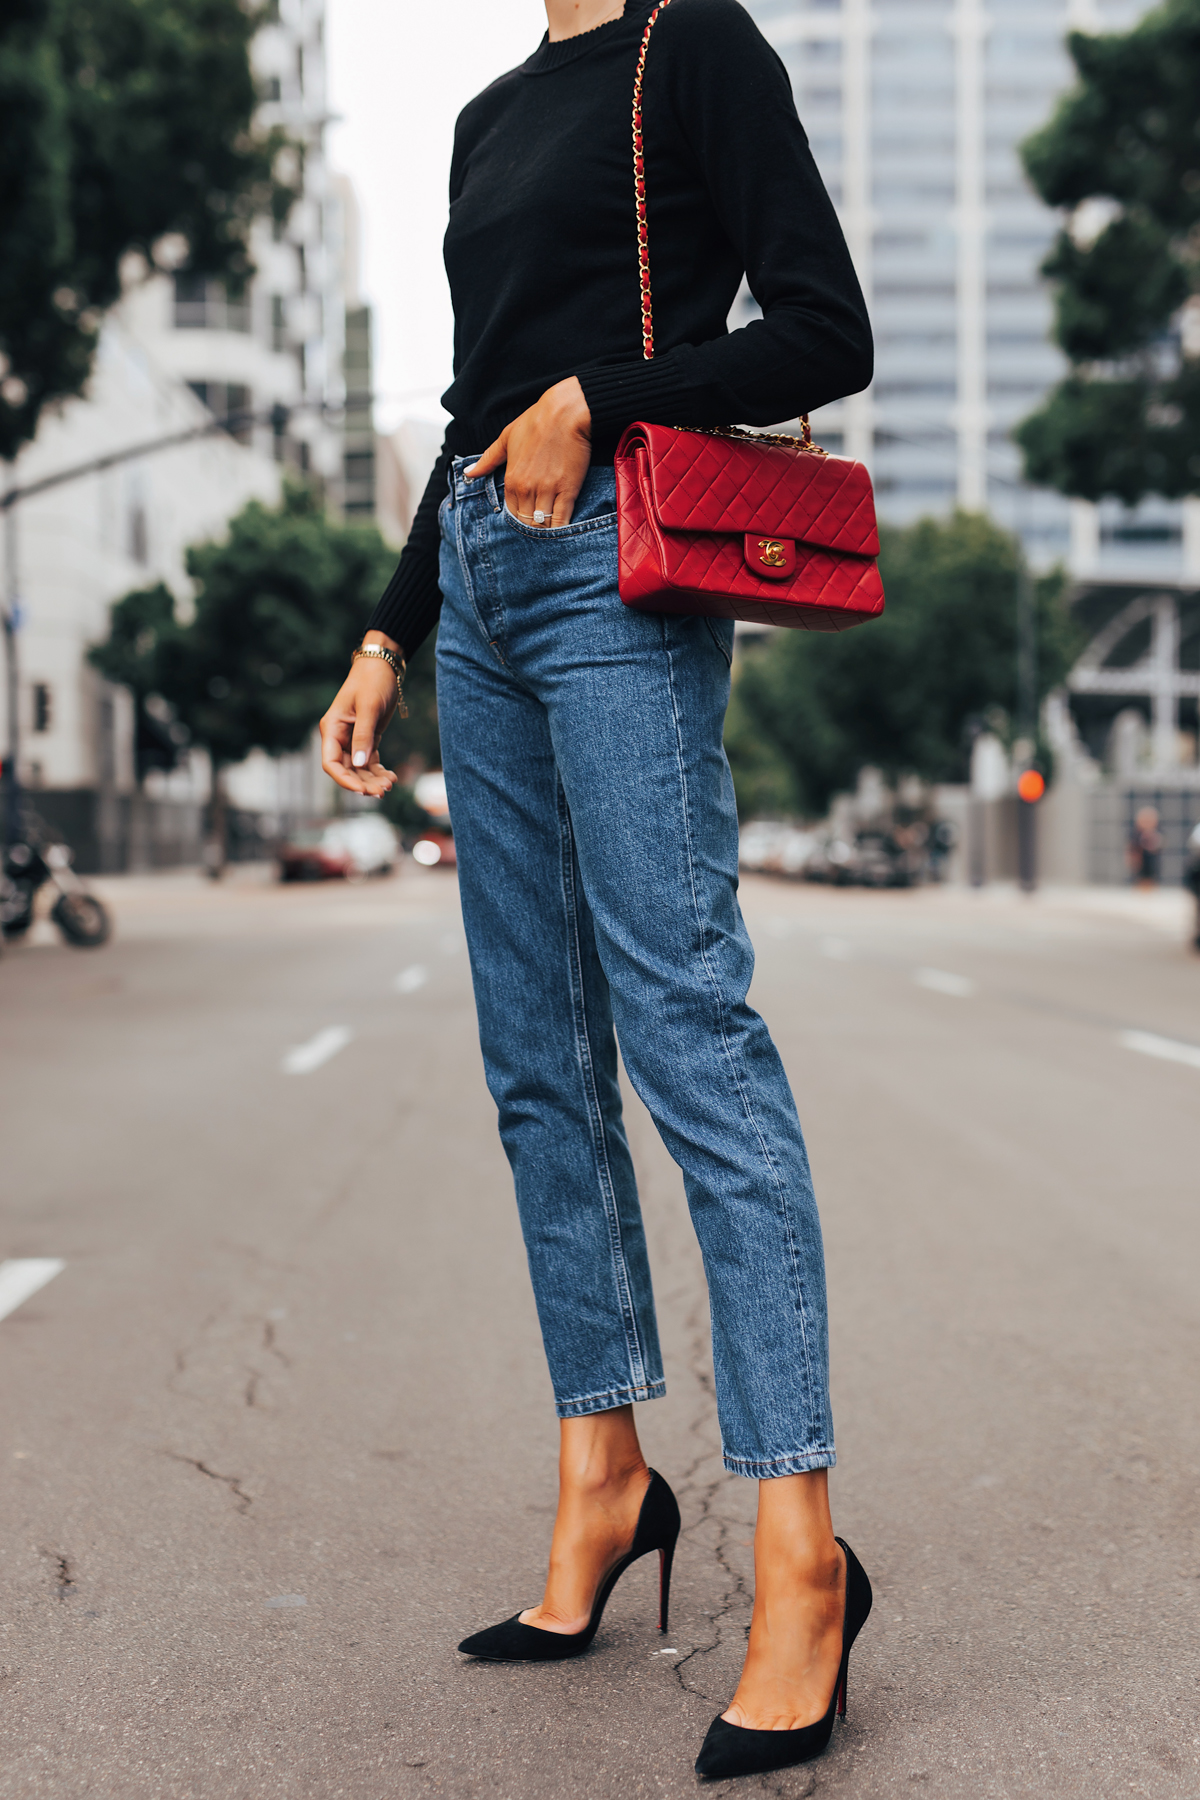 Fashion Jackson Wearing Everlane Black Cashmere Sweater Everlane Relaxed Jeans Black Pumps Chanel Red Handbag 1